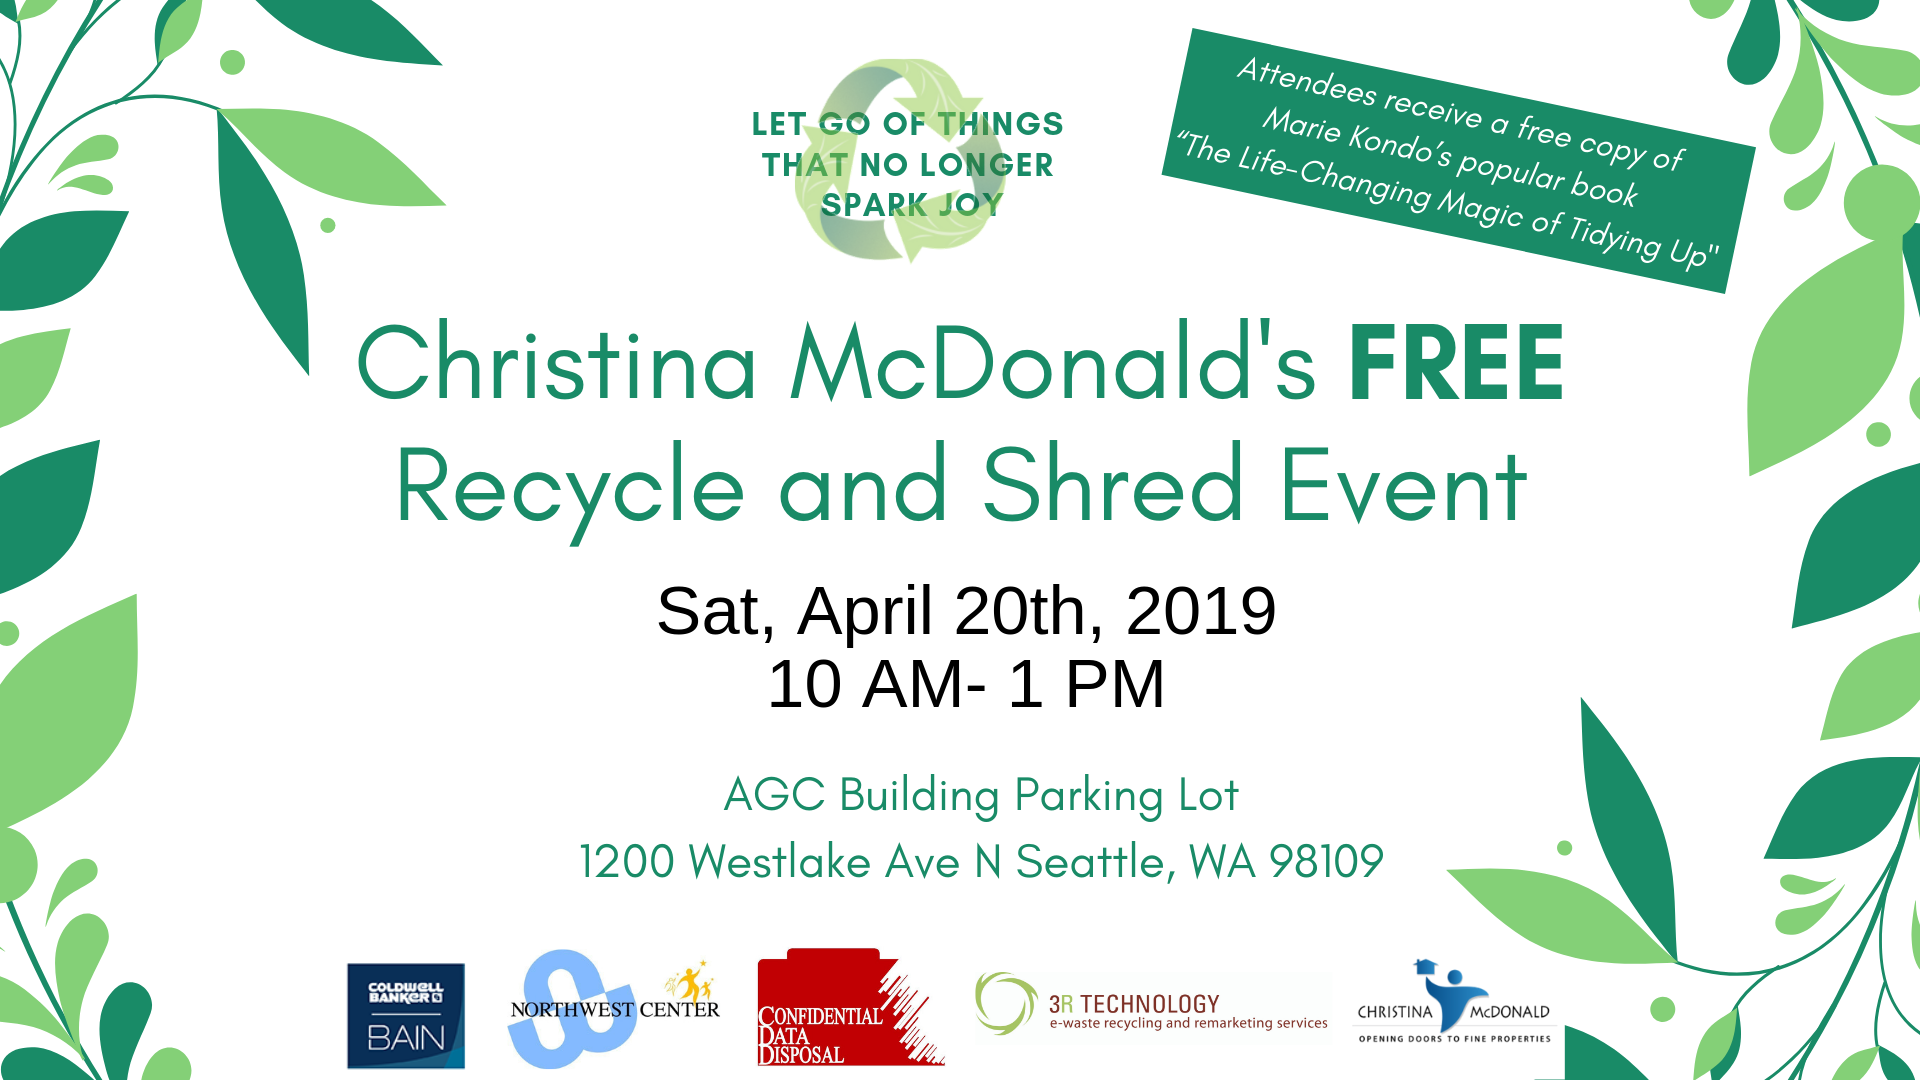 Recycle and Shred Event 2019 | Christina McDonald